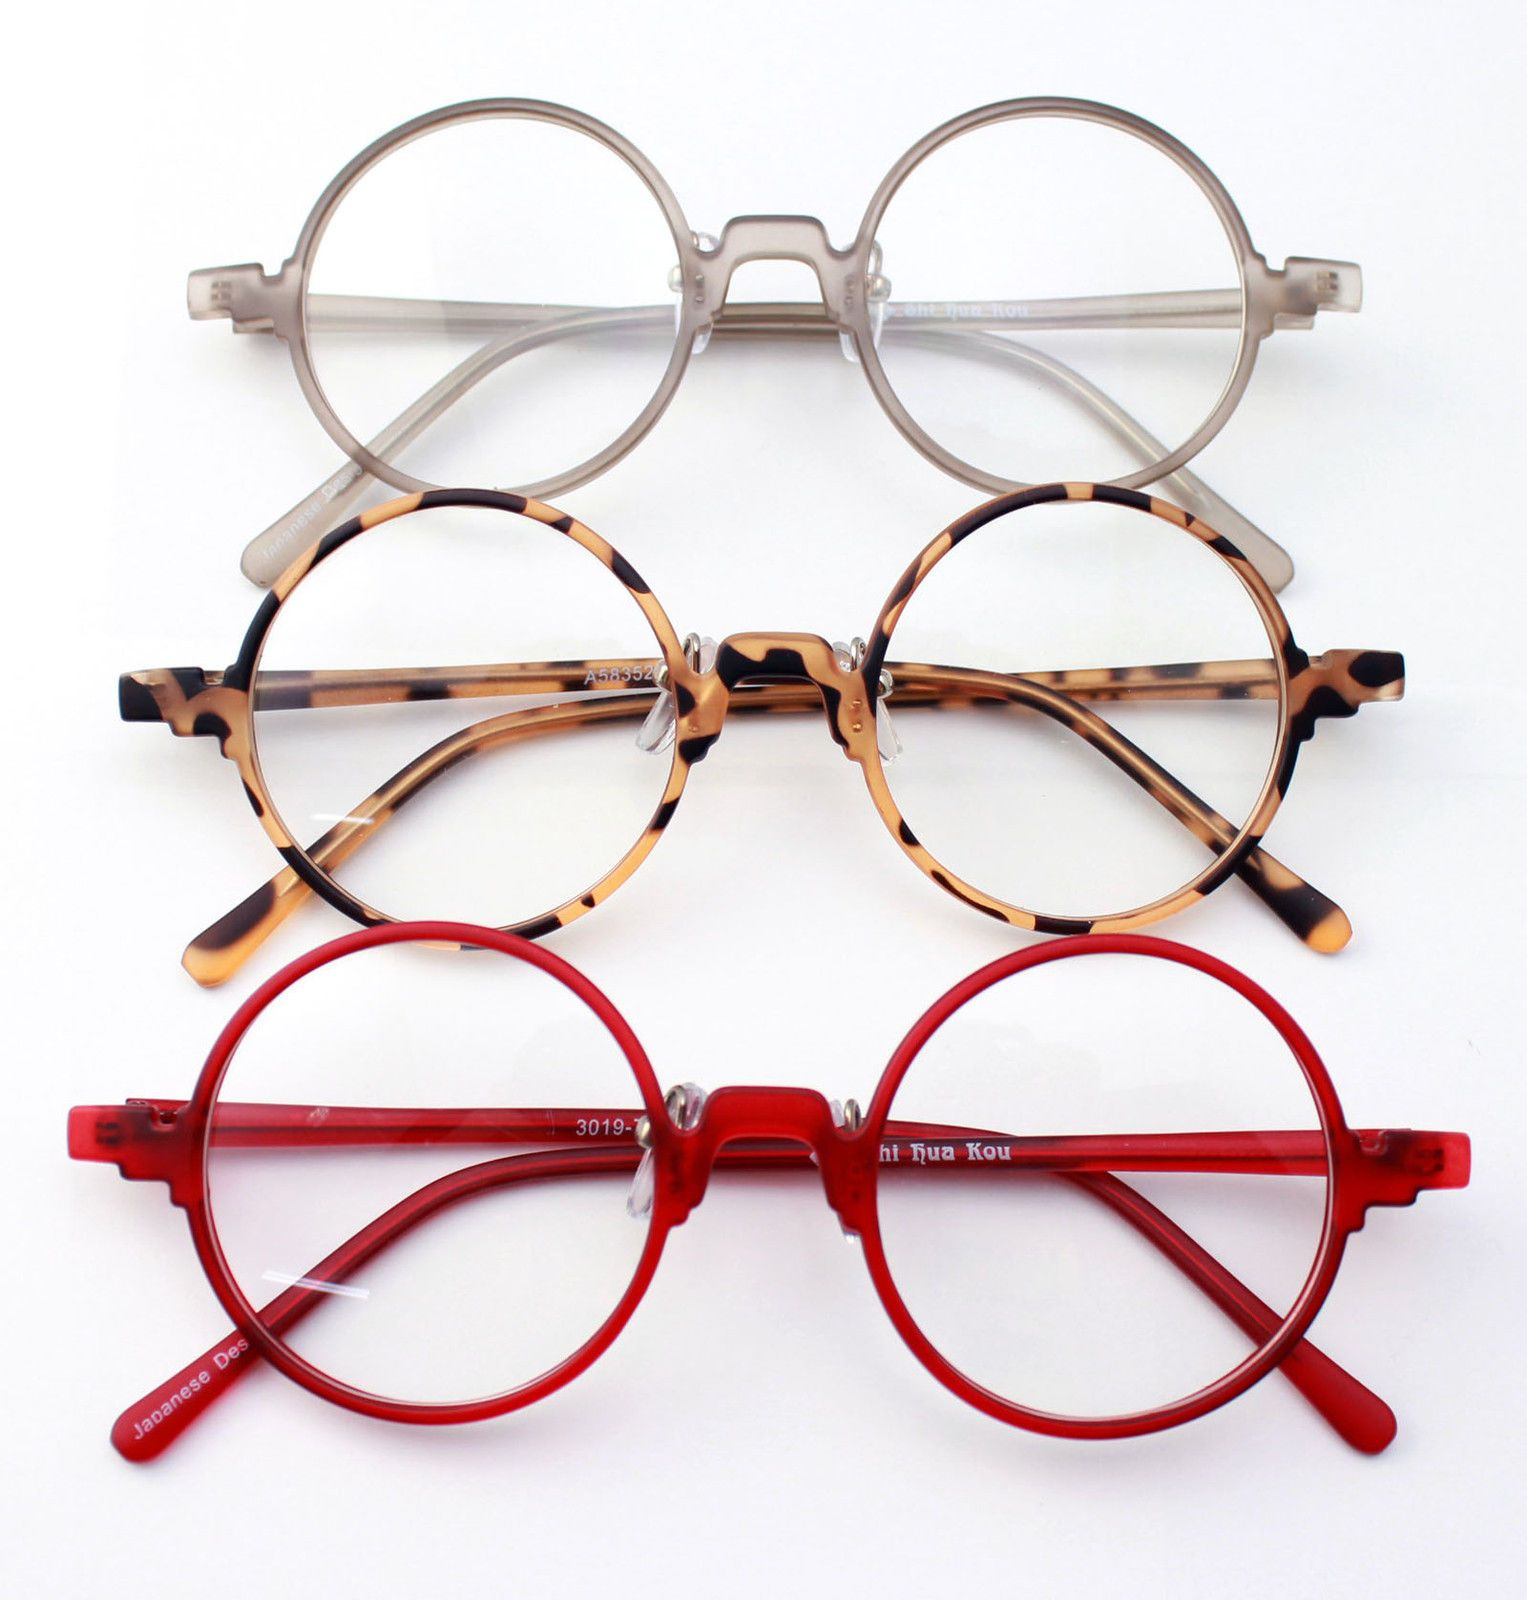 80aa9a931ce71 Vintage Retro Flexible Round Amber Grey Red Eyeglass Frame Spectacles  Eyewear RX